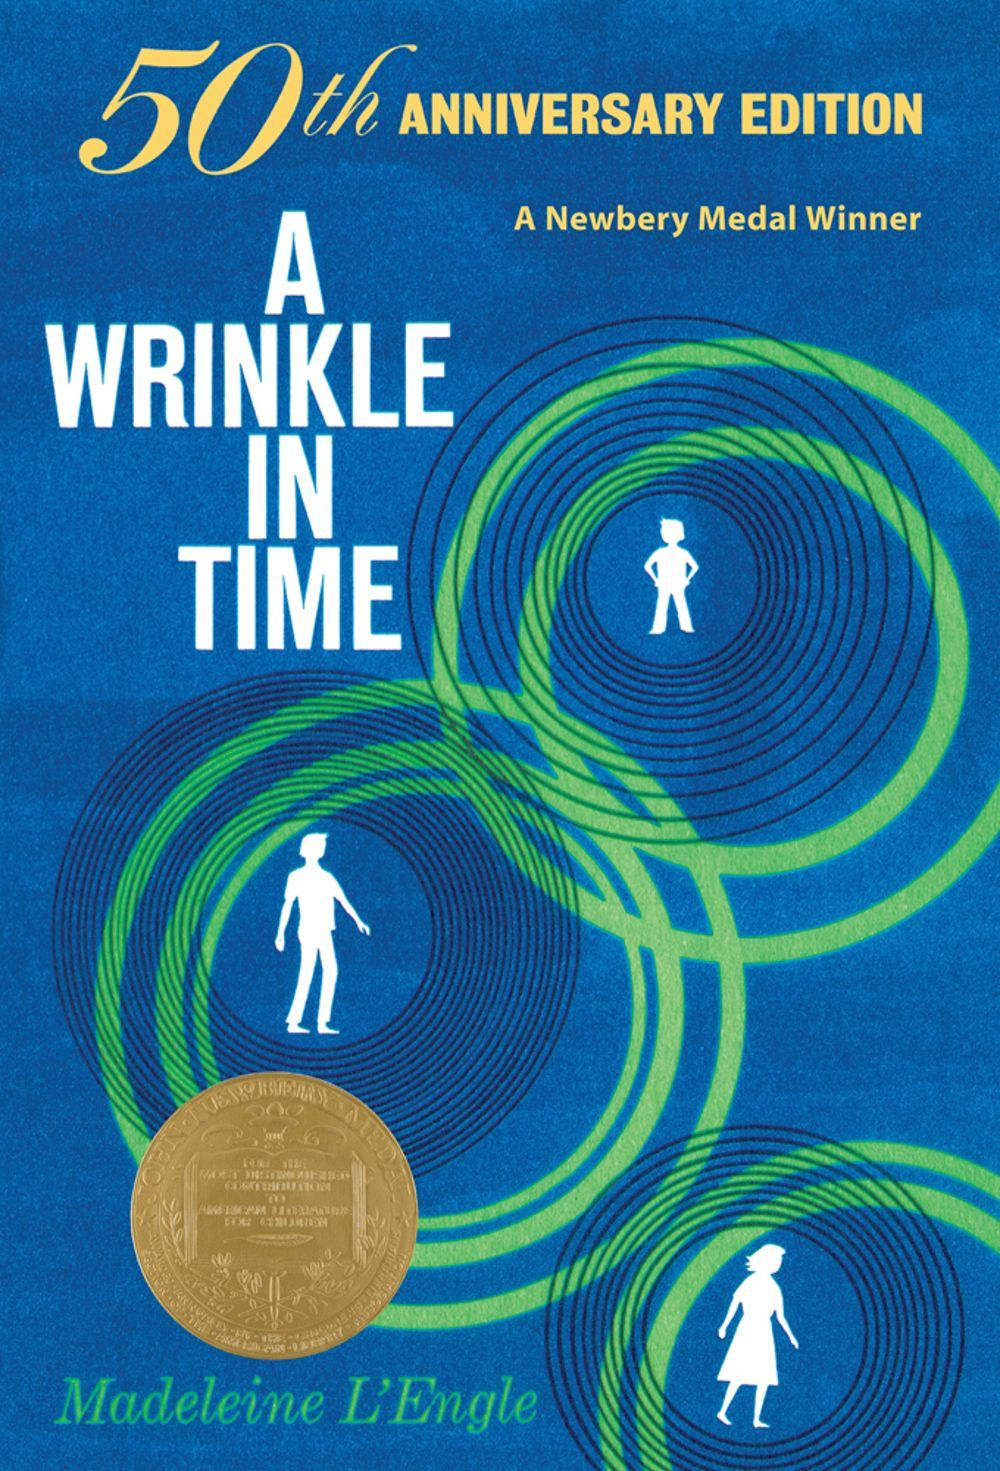 A Wrinkle in Time 50th anniversary edition